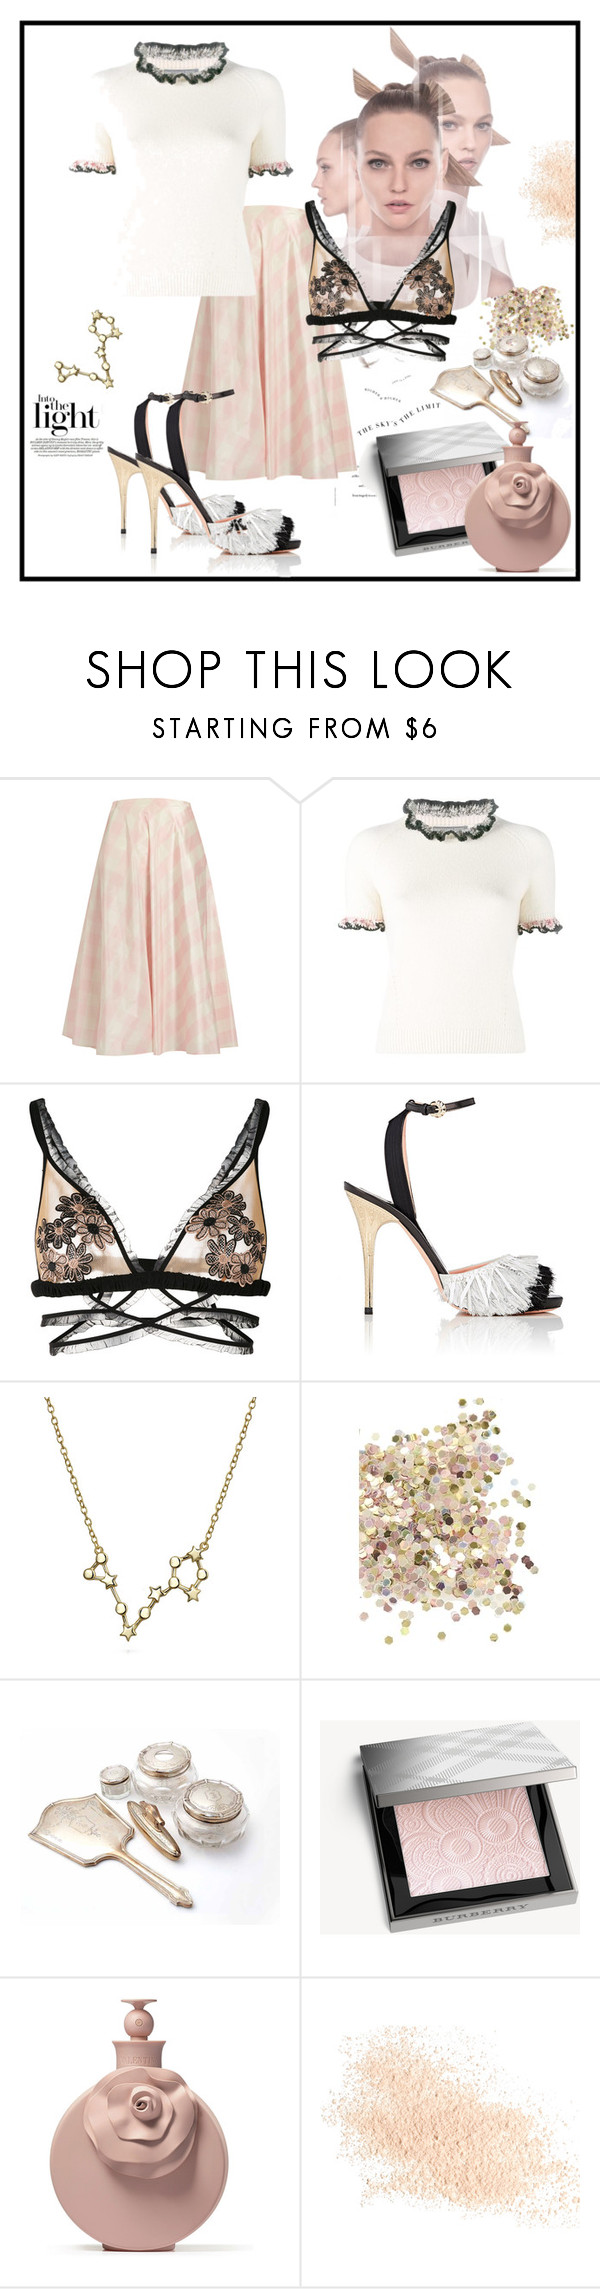 """""""The Sky's The Limit"""" by ildiko-olsa ❤ liked on Polyvore featuring Valentino, Alexander McQueen, For Love & Lemons, Rochas, Bling Jewelry, Topshop, Burberry and Eve Lom"""